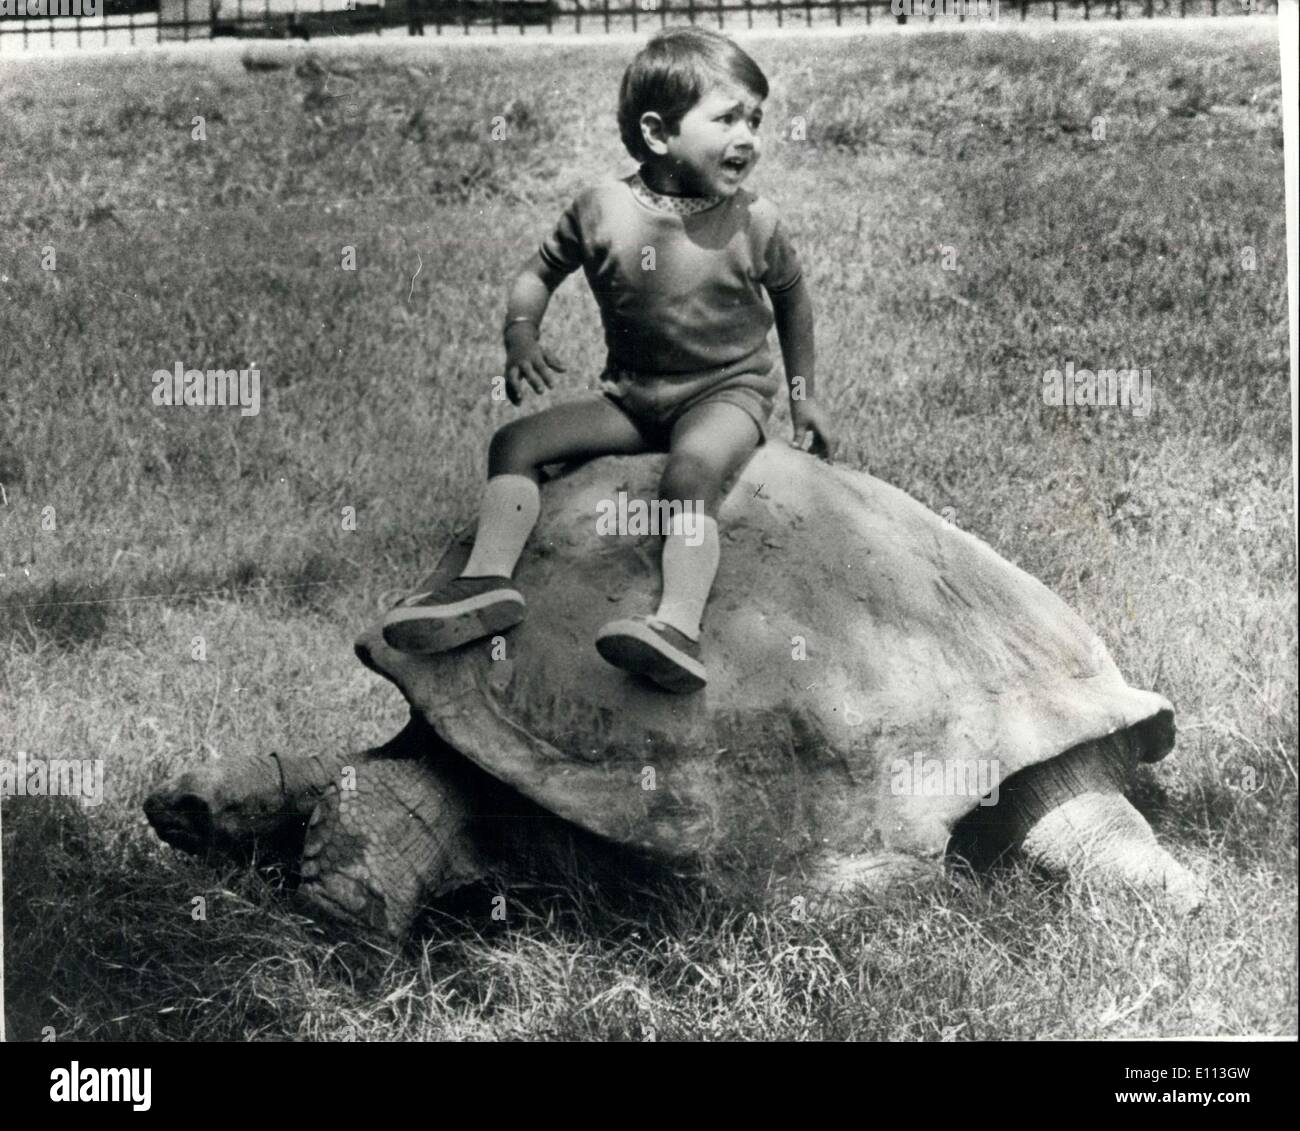 Oct. 06, 1975 - 150-year-old Elephentine Tortoise - the World' Oldest Animal: An 150-year-old Elepentine Turtoise, the oldest resident of the Calcutta Zoo. and claimed to be the oldest animal in any zoo all over the world, was the star attraction when the zoological gardens observed its centehary on September 30th, 1975 Out of the original eight kept in East India Company's Barrackpore Zoo., Four were brought to te Calcutta Zoological Gardens, founded by Lt. General Sir Richard Temple, the Lt-Governor of Bengal in 1875,exactly 100 years ago - Stock Image